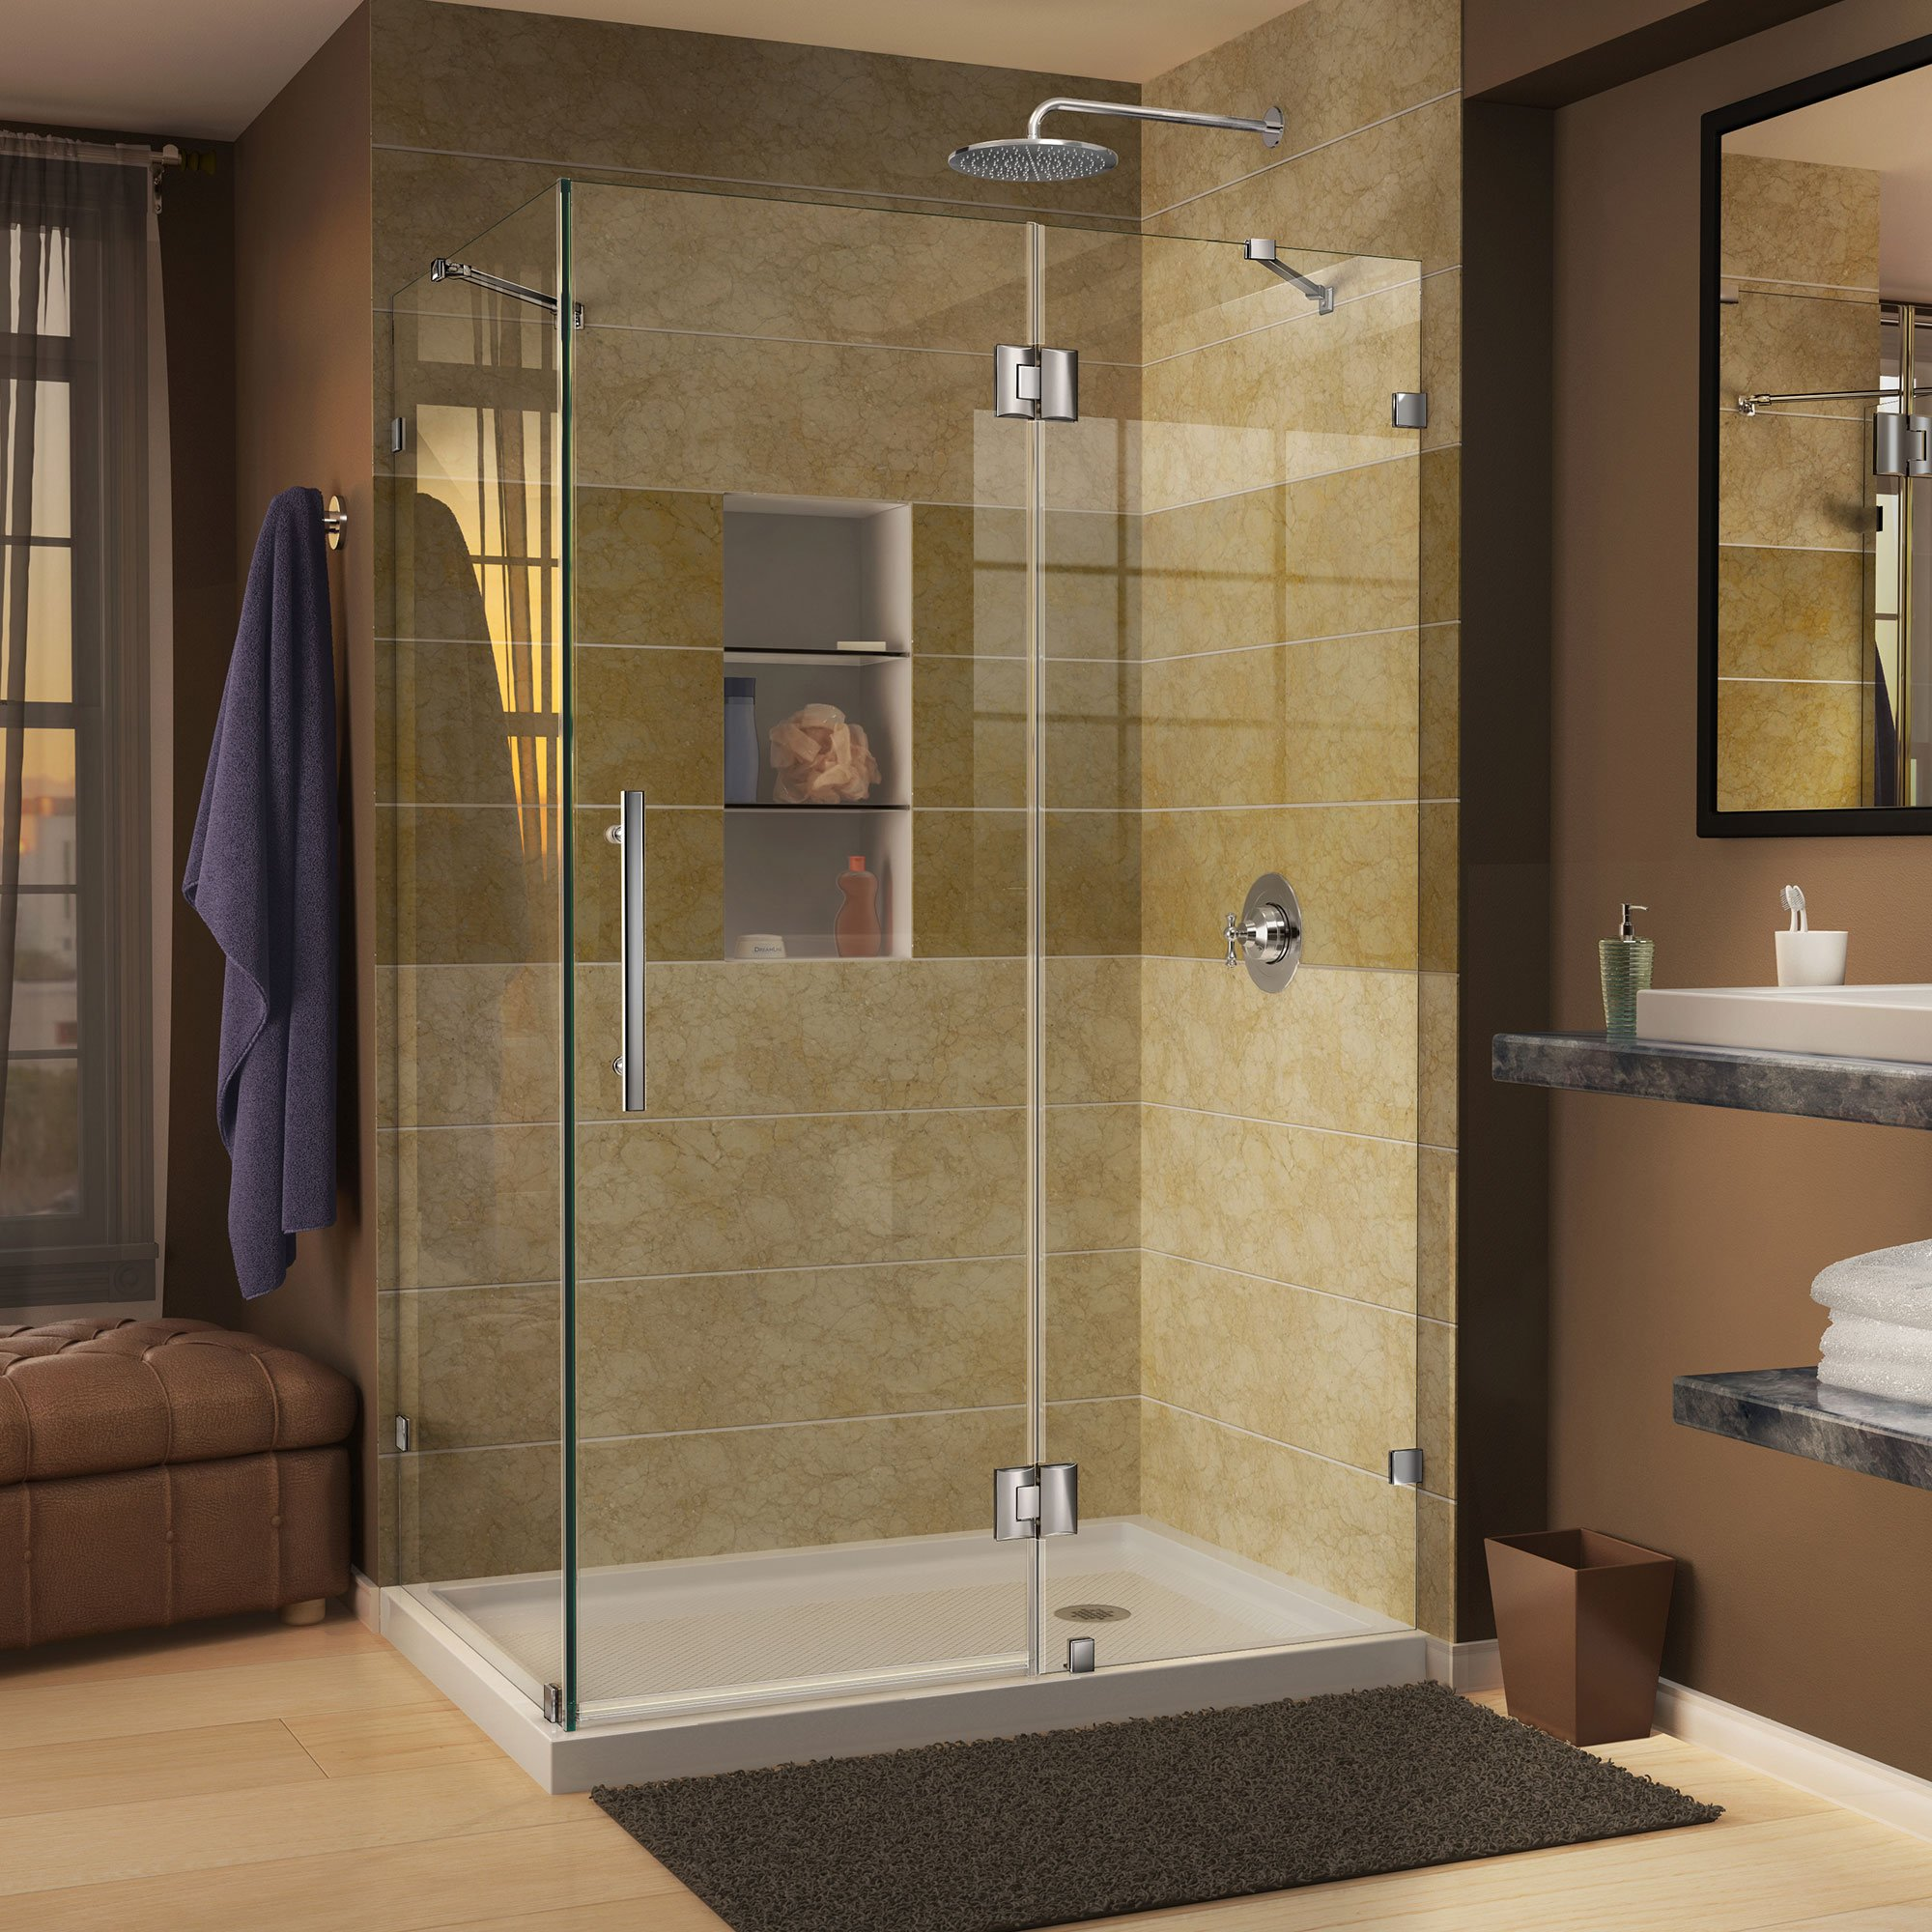 DreamLine Quatra Lux 34 5/16 in. D x 46 5/16 in. W, Frameless Hinged Shower Enclosure, 3/8'' Glass, Chrome Finish by DreamLine